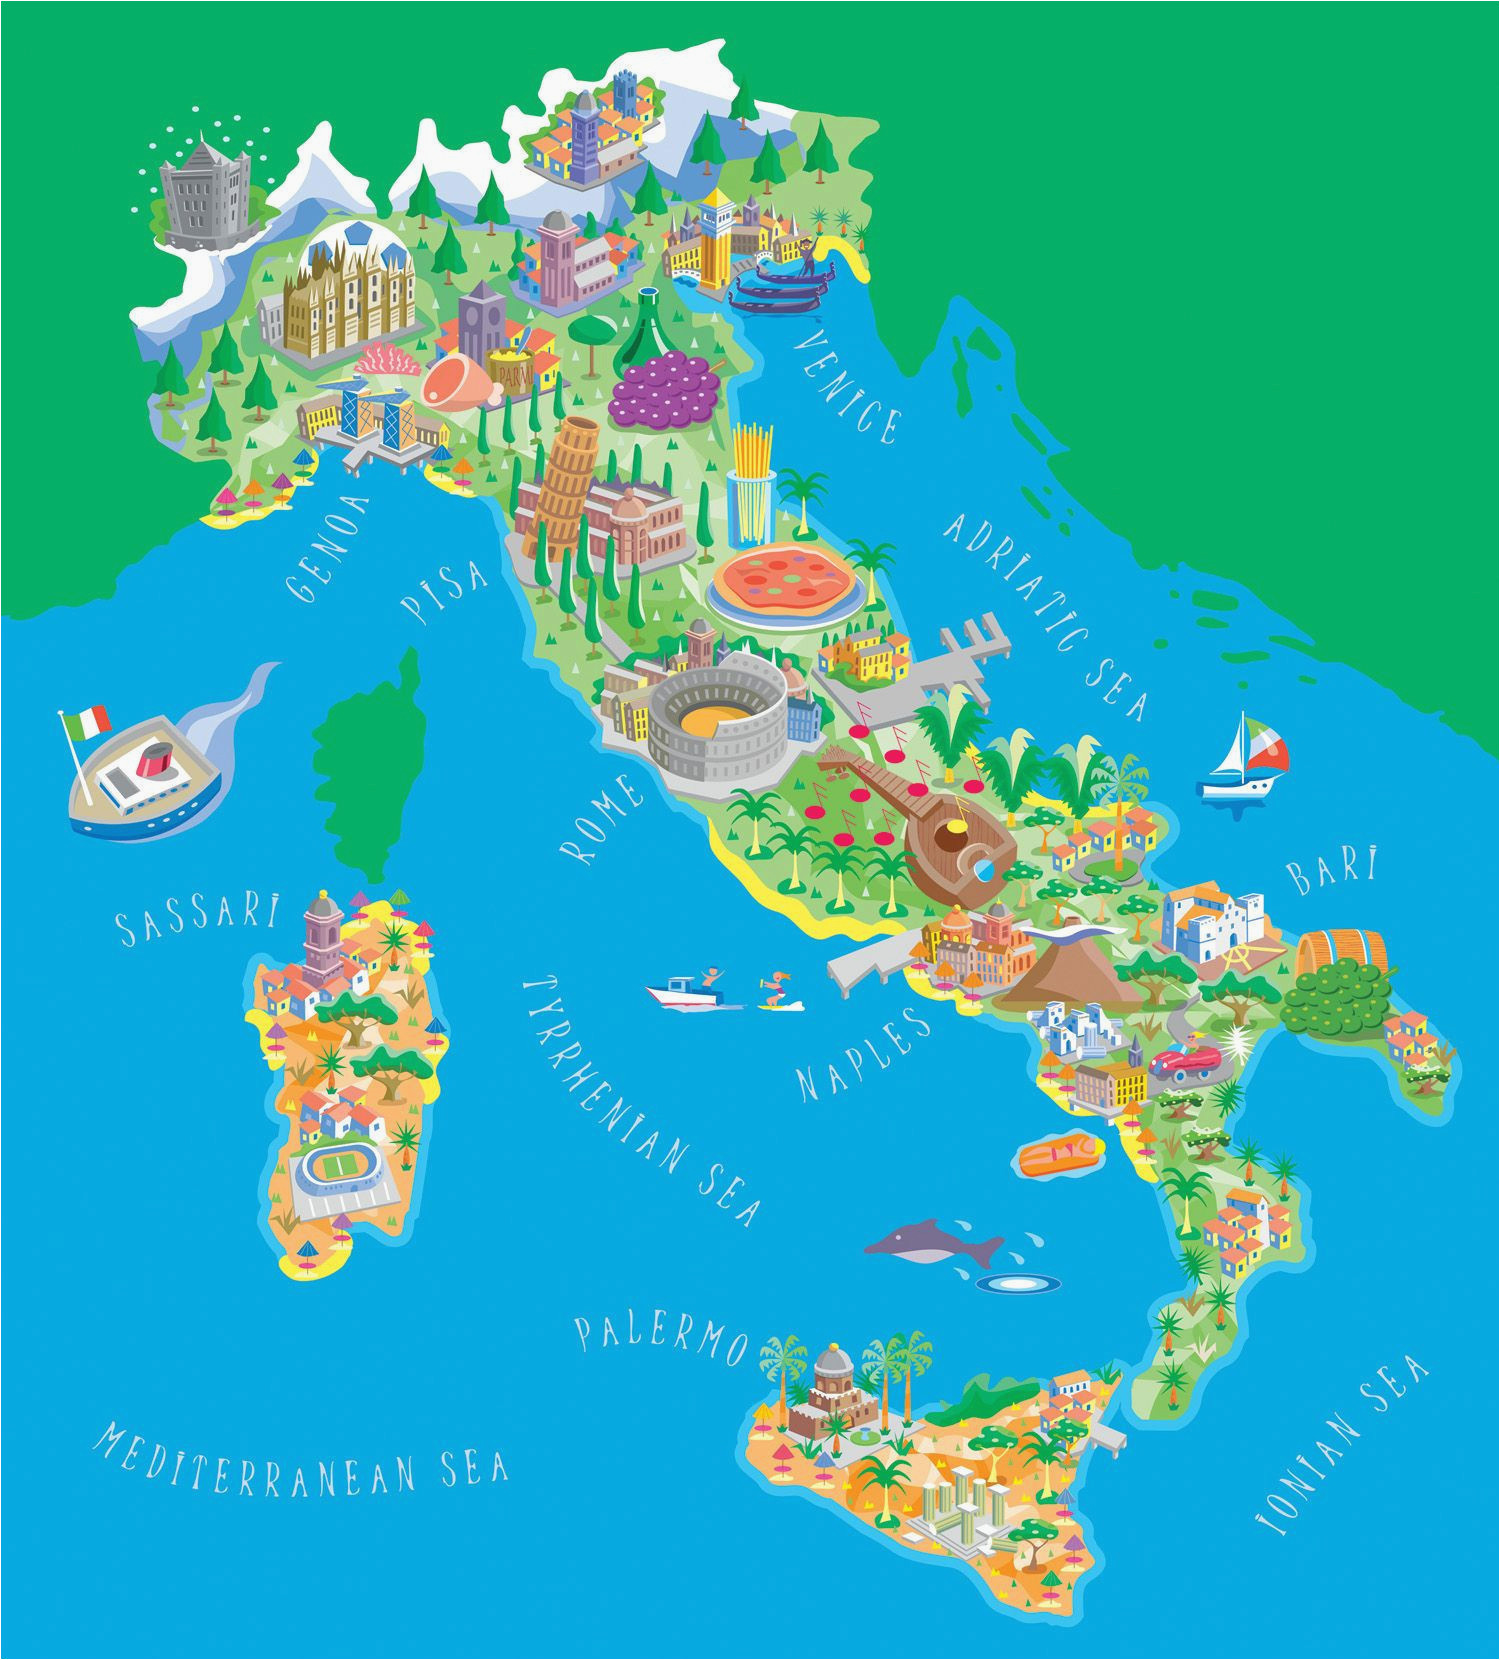 Google Maps for Canada Google Maps Napoli Italy Map Of the Us Canadian Border